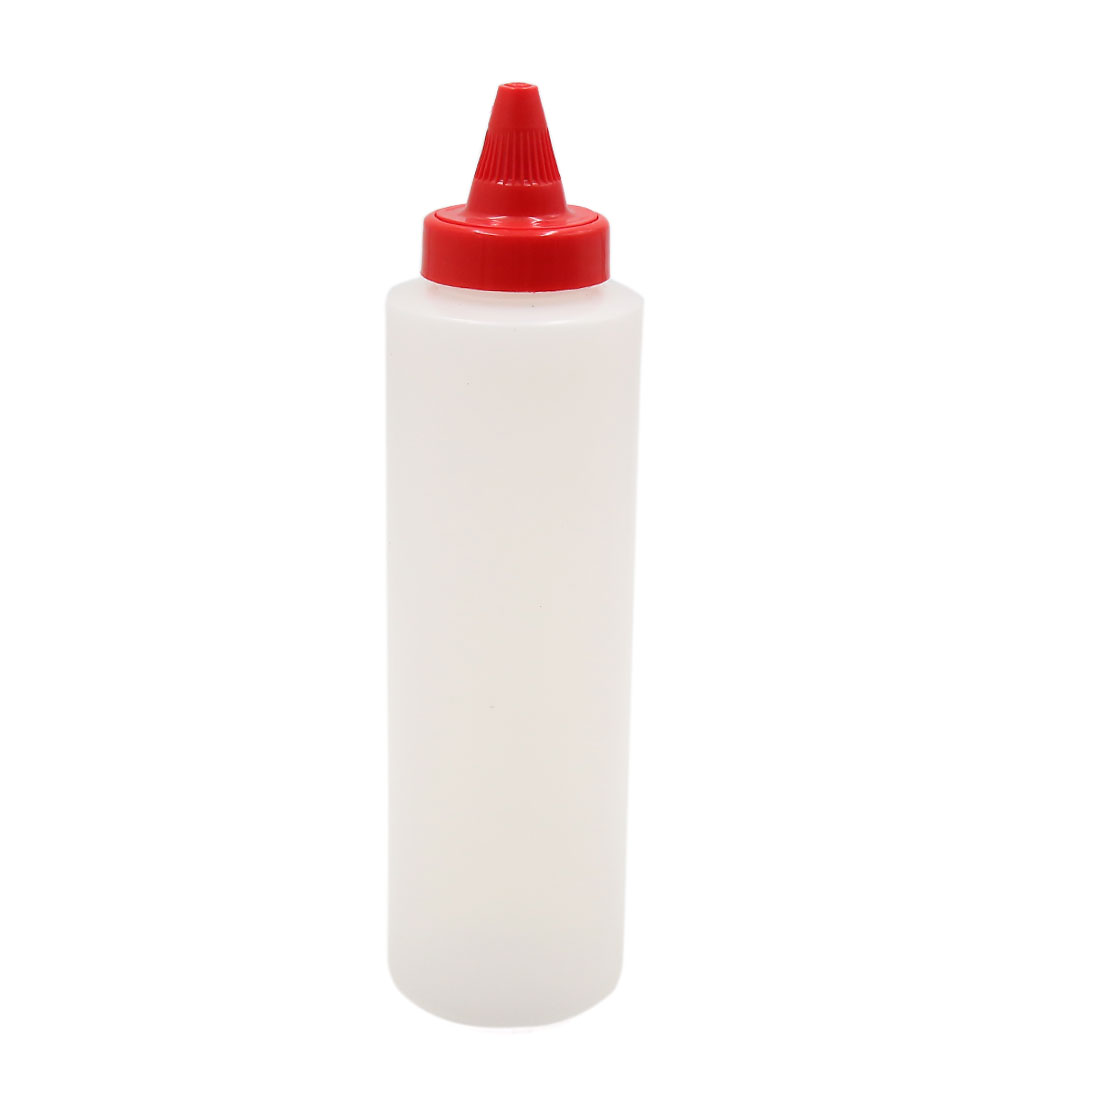 300ML Red Auto Car Vehicle Care Polish Wax Bottle Dispenser Can Pots